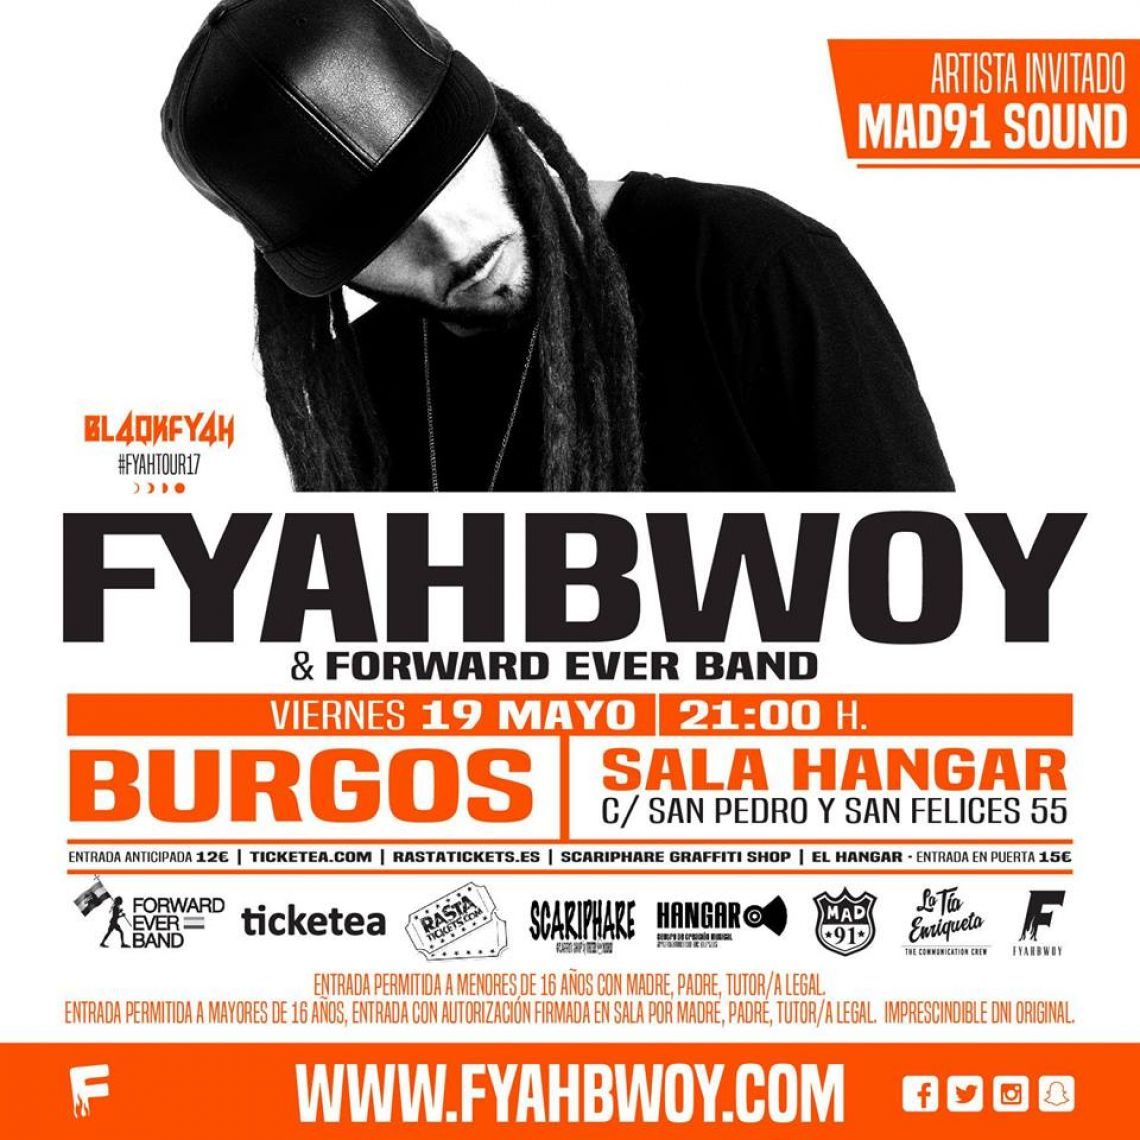 Fyahbwoy & Forward Ever Band en Burgos - #FyahTour17